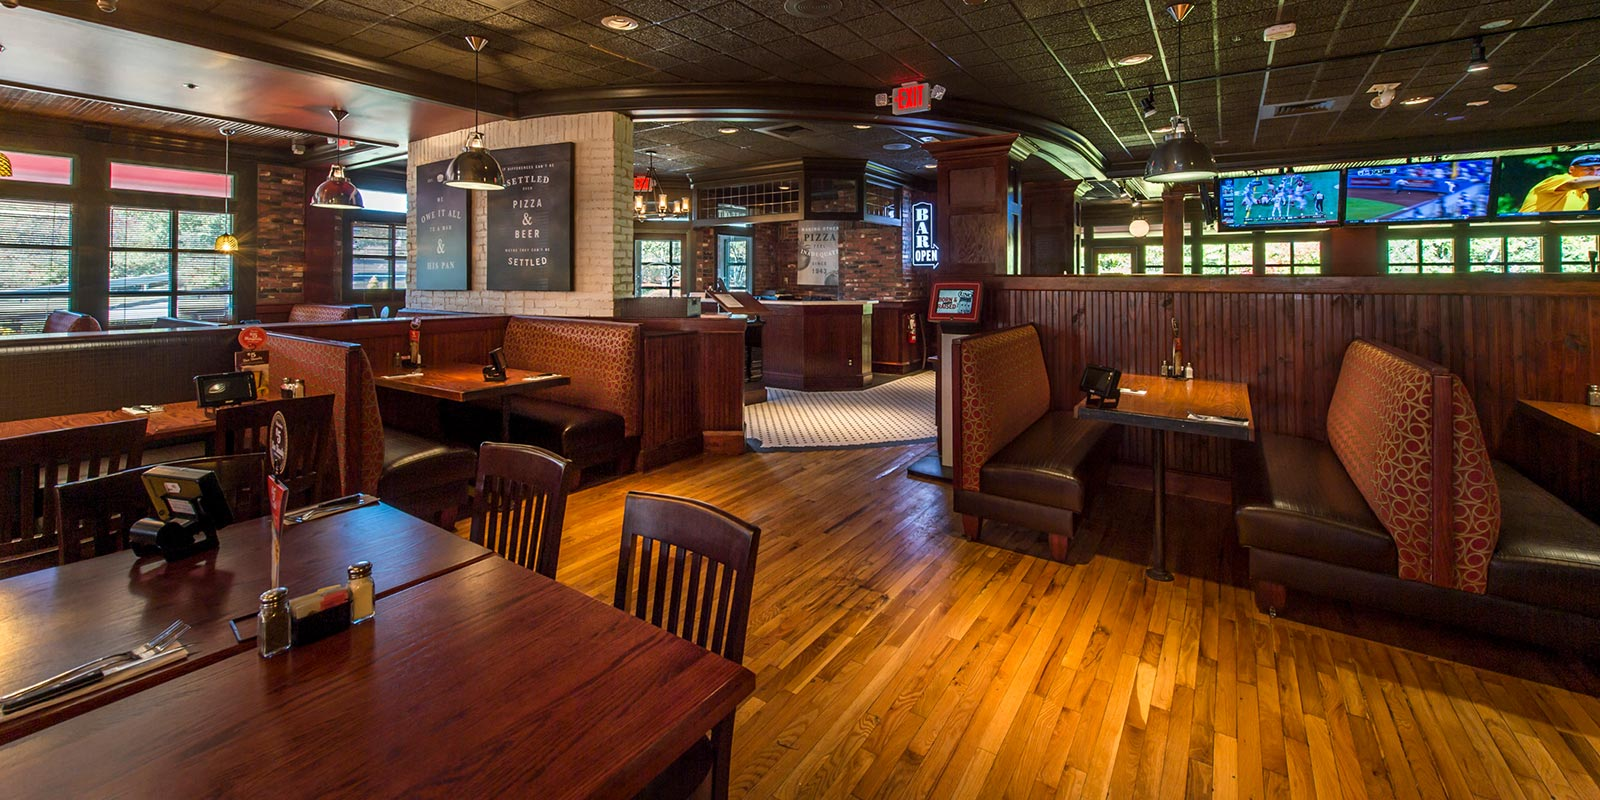 Uno Pizzeria & Grill - Welcoming Interiors